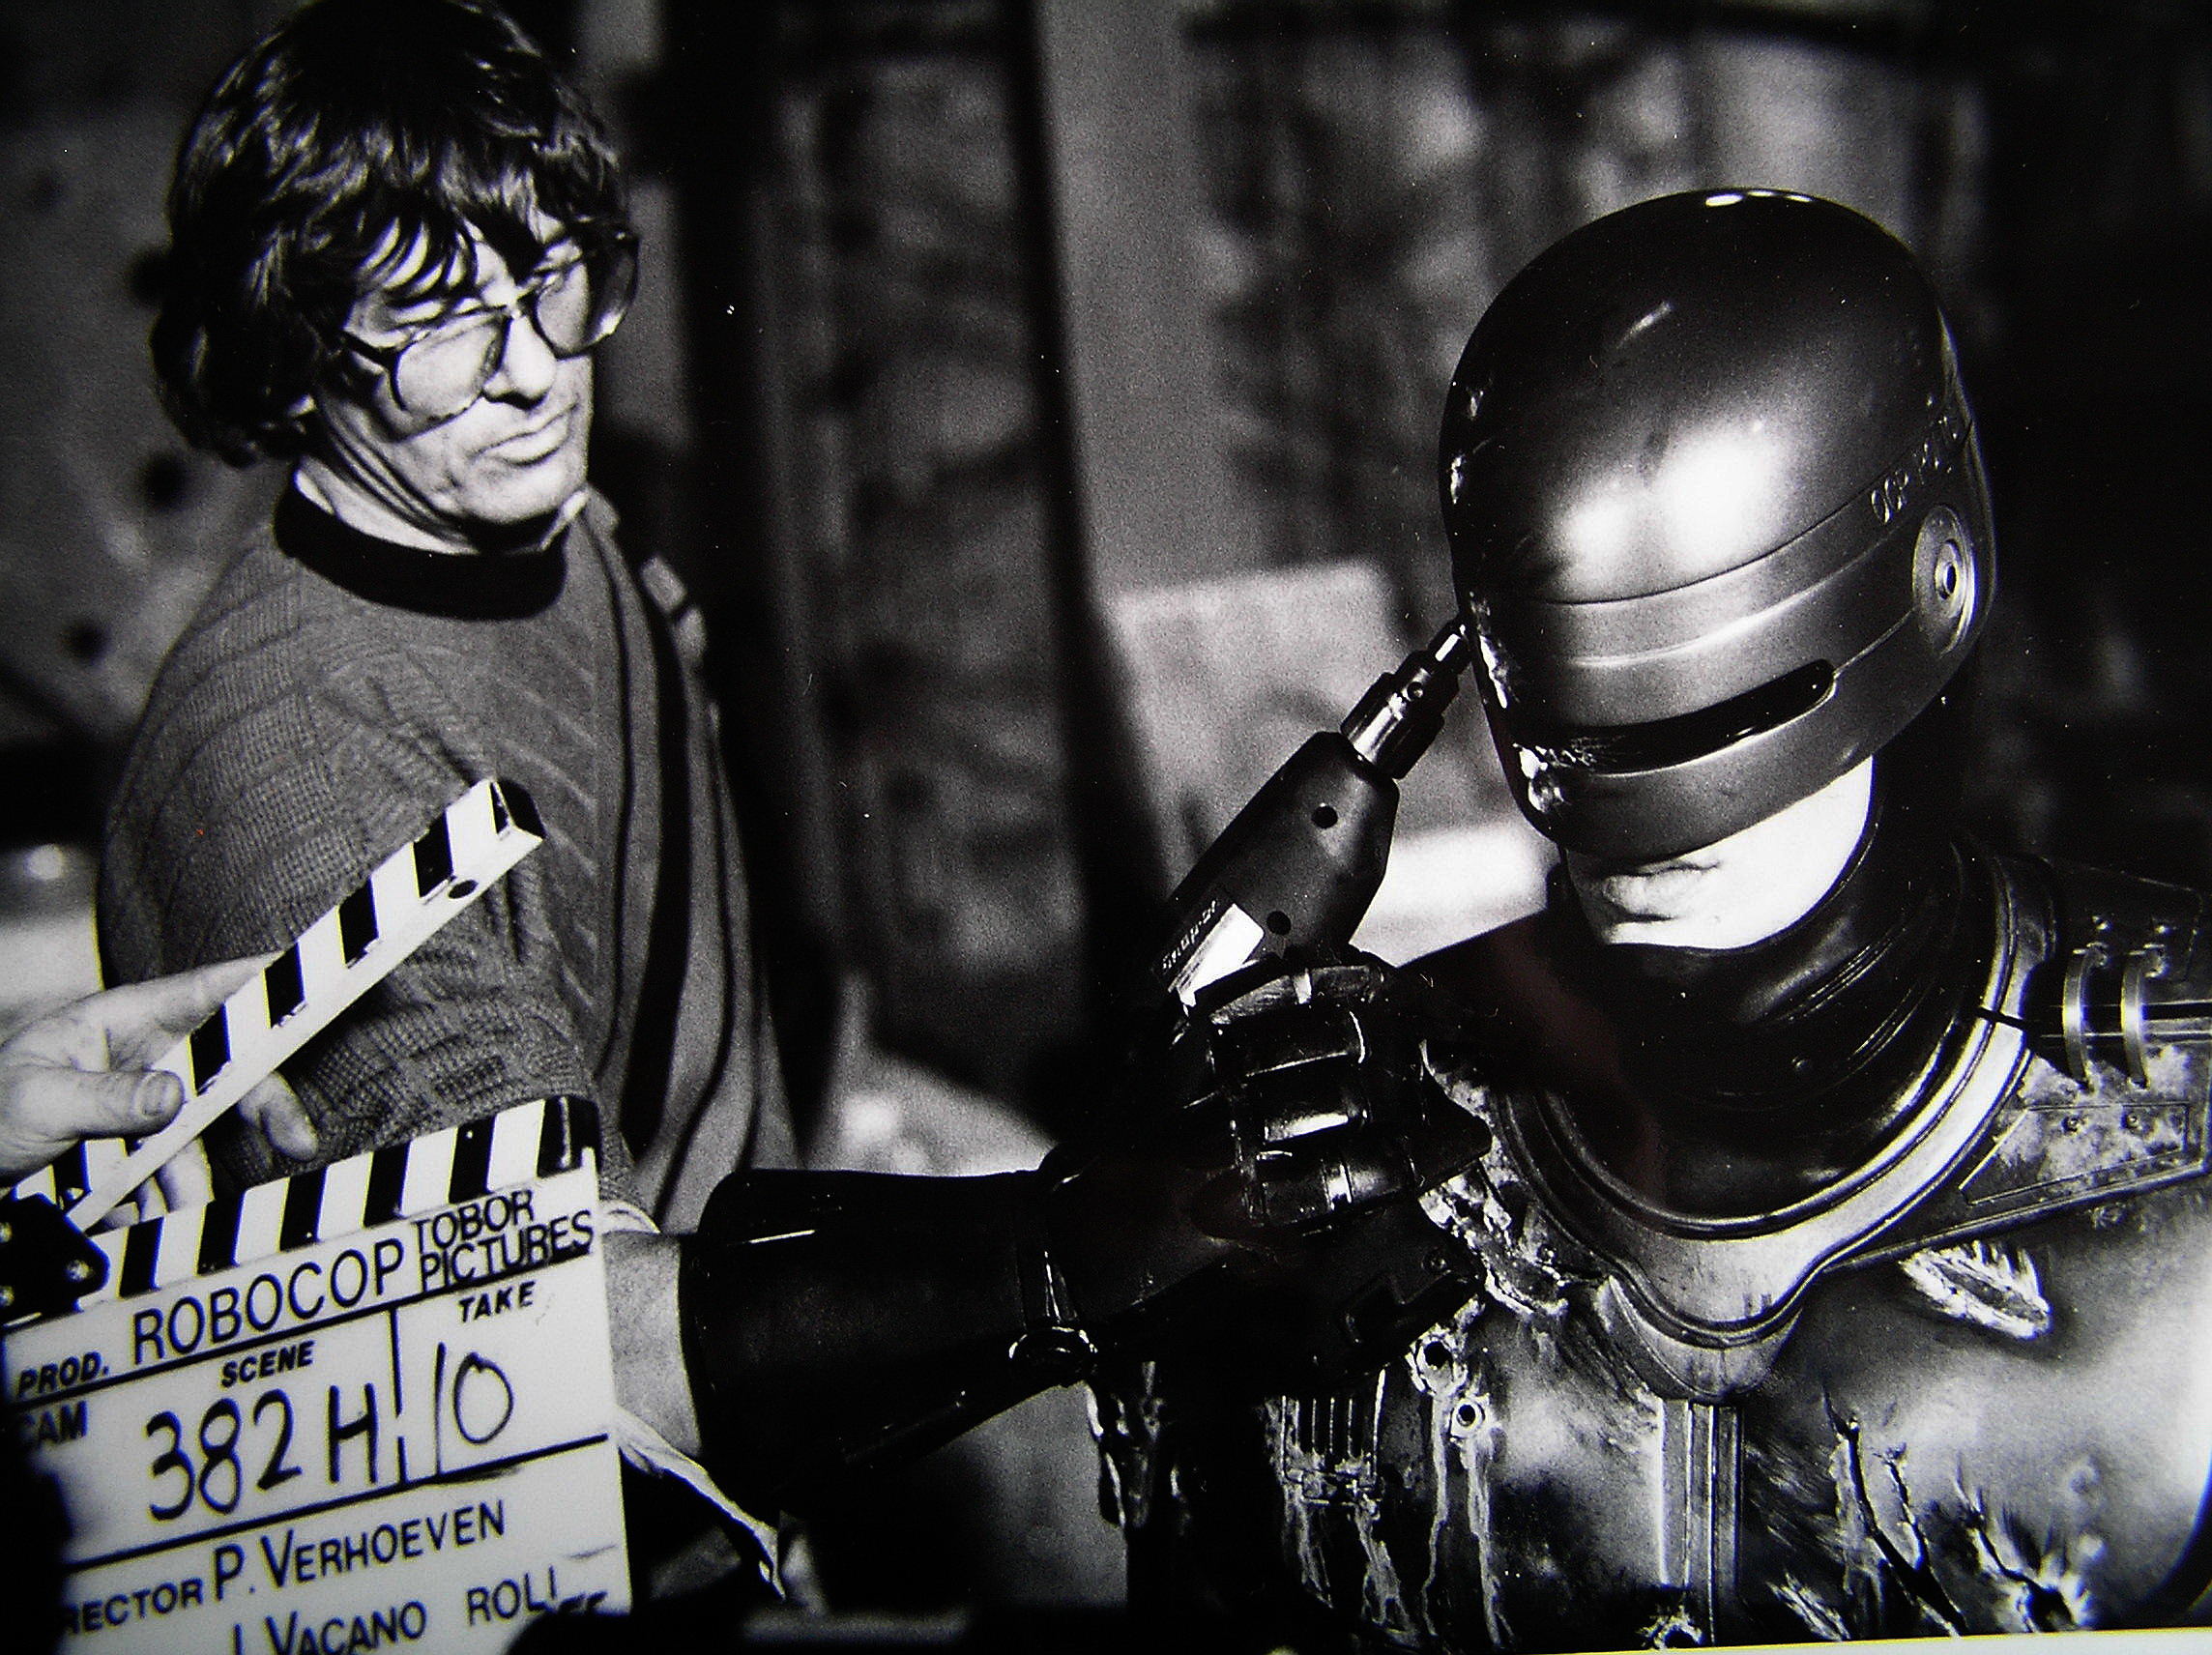 photo tournage coulisse cinema Robocop 55 Photos sur des tournages de films #2  photo featured cinema 2 bonus